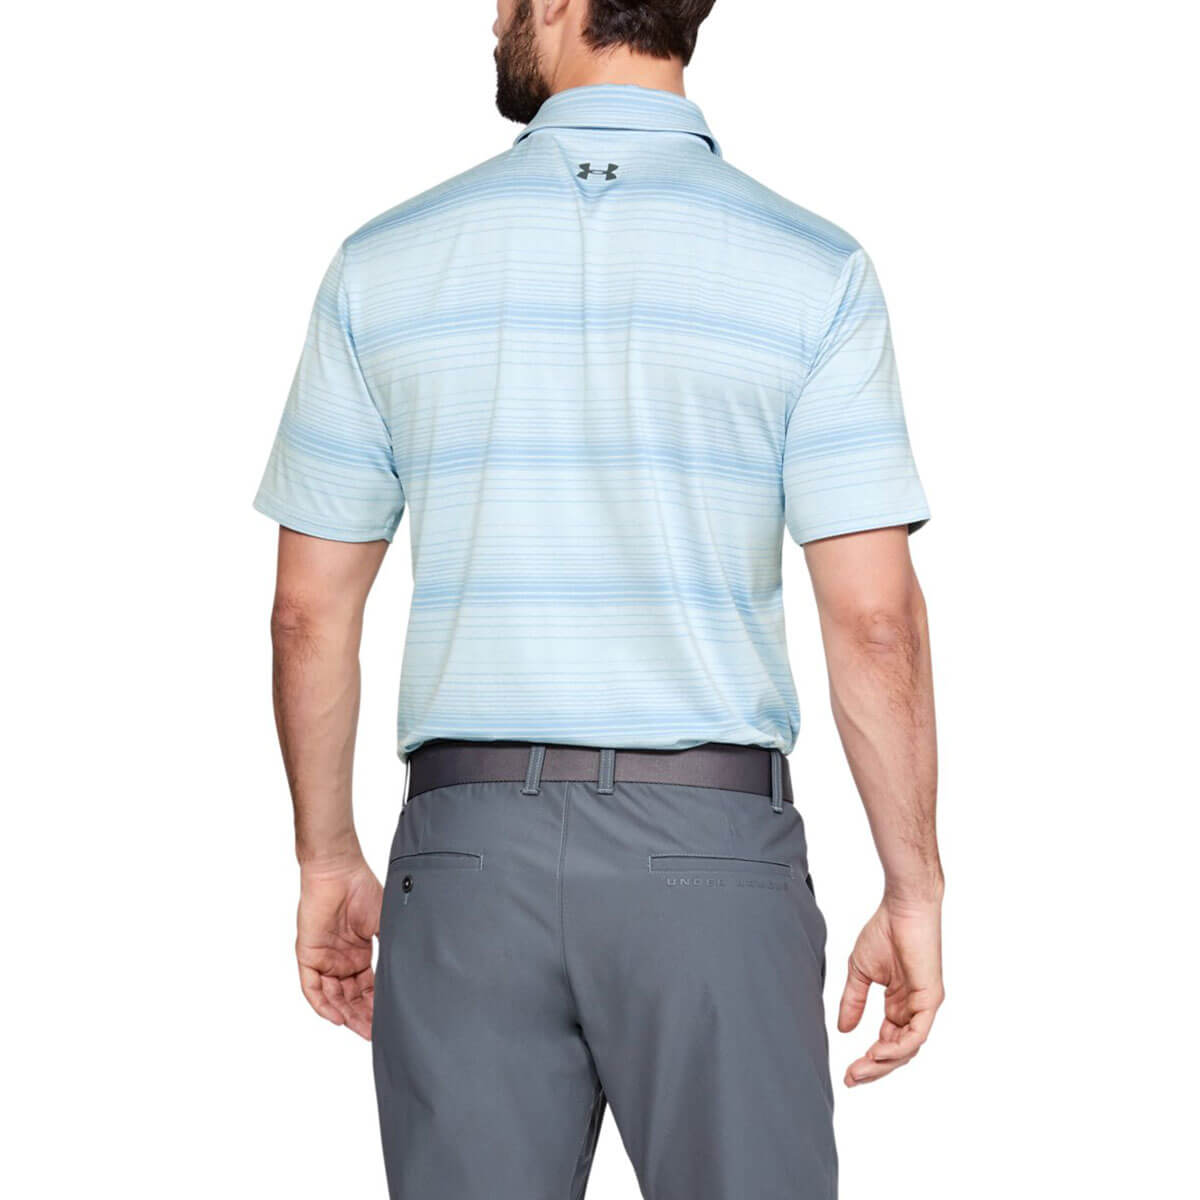 Under-Armour-Mens-2019-Playoff-Polo-2-0-Breathable-Light-Stretch-Polo-Shirt thumbnail 65